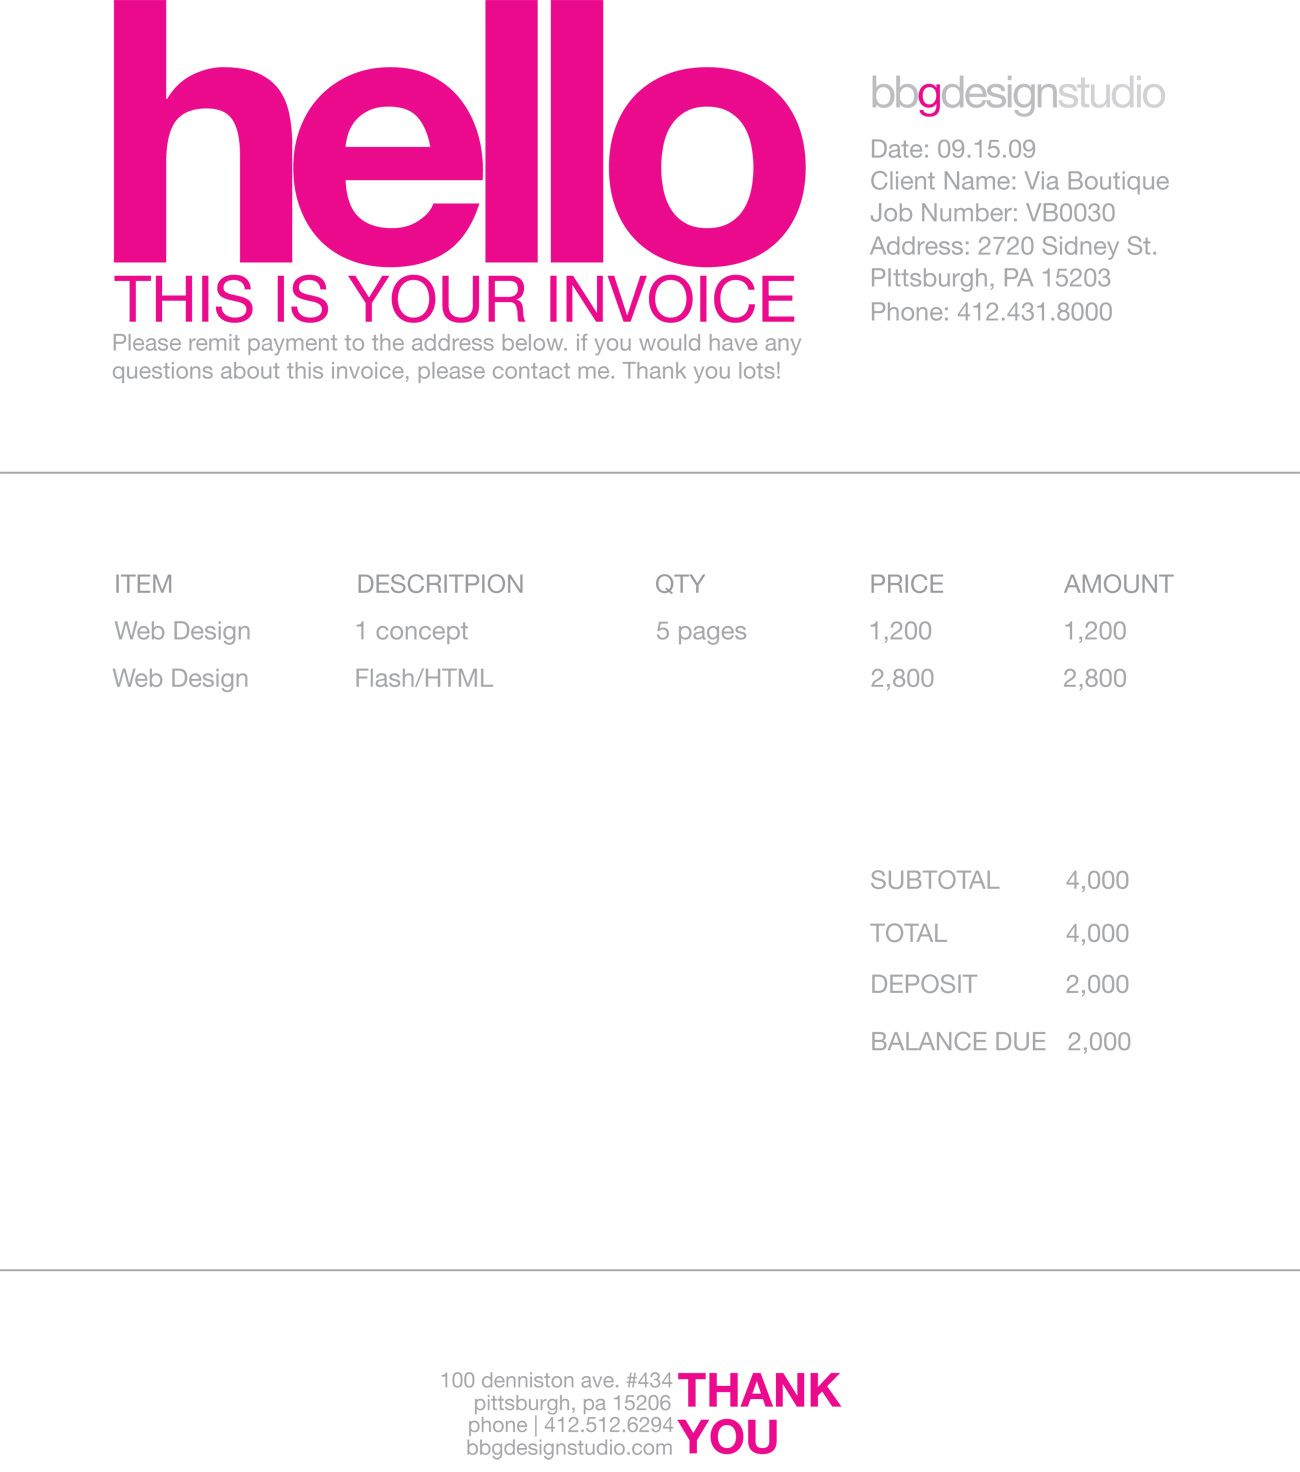 Soulfulpowerus  Sweet  Images About Invoice Design On Pinterest With Marvelous Rental Invoice Template Excel Besides Best Invoicing Apps Furthermore Simple Invoice Maker With Enchanting How To Draft An Invoice Also Ebay Send An Invoice In Addition Simple Sample Invoice And Sundry Invoice As Well As Invoice Reminder Letter Additionally Trucking Invoice Software From Pinterestcom With Soulfulpowerus  Marvelous  Images About Invoice Design On Pinterest With Enchanting Rental Invoice Template Excel Besides Best Invoicing Apps Furthermore Simple Invoice Maker And Sweet How To Draft An Invoice Also Ebay Send An Invoice In Addition Simple Sample Invoice From Pinterestcom